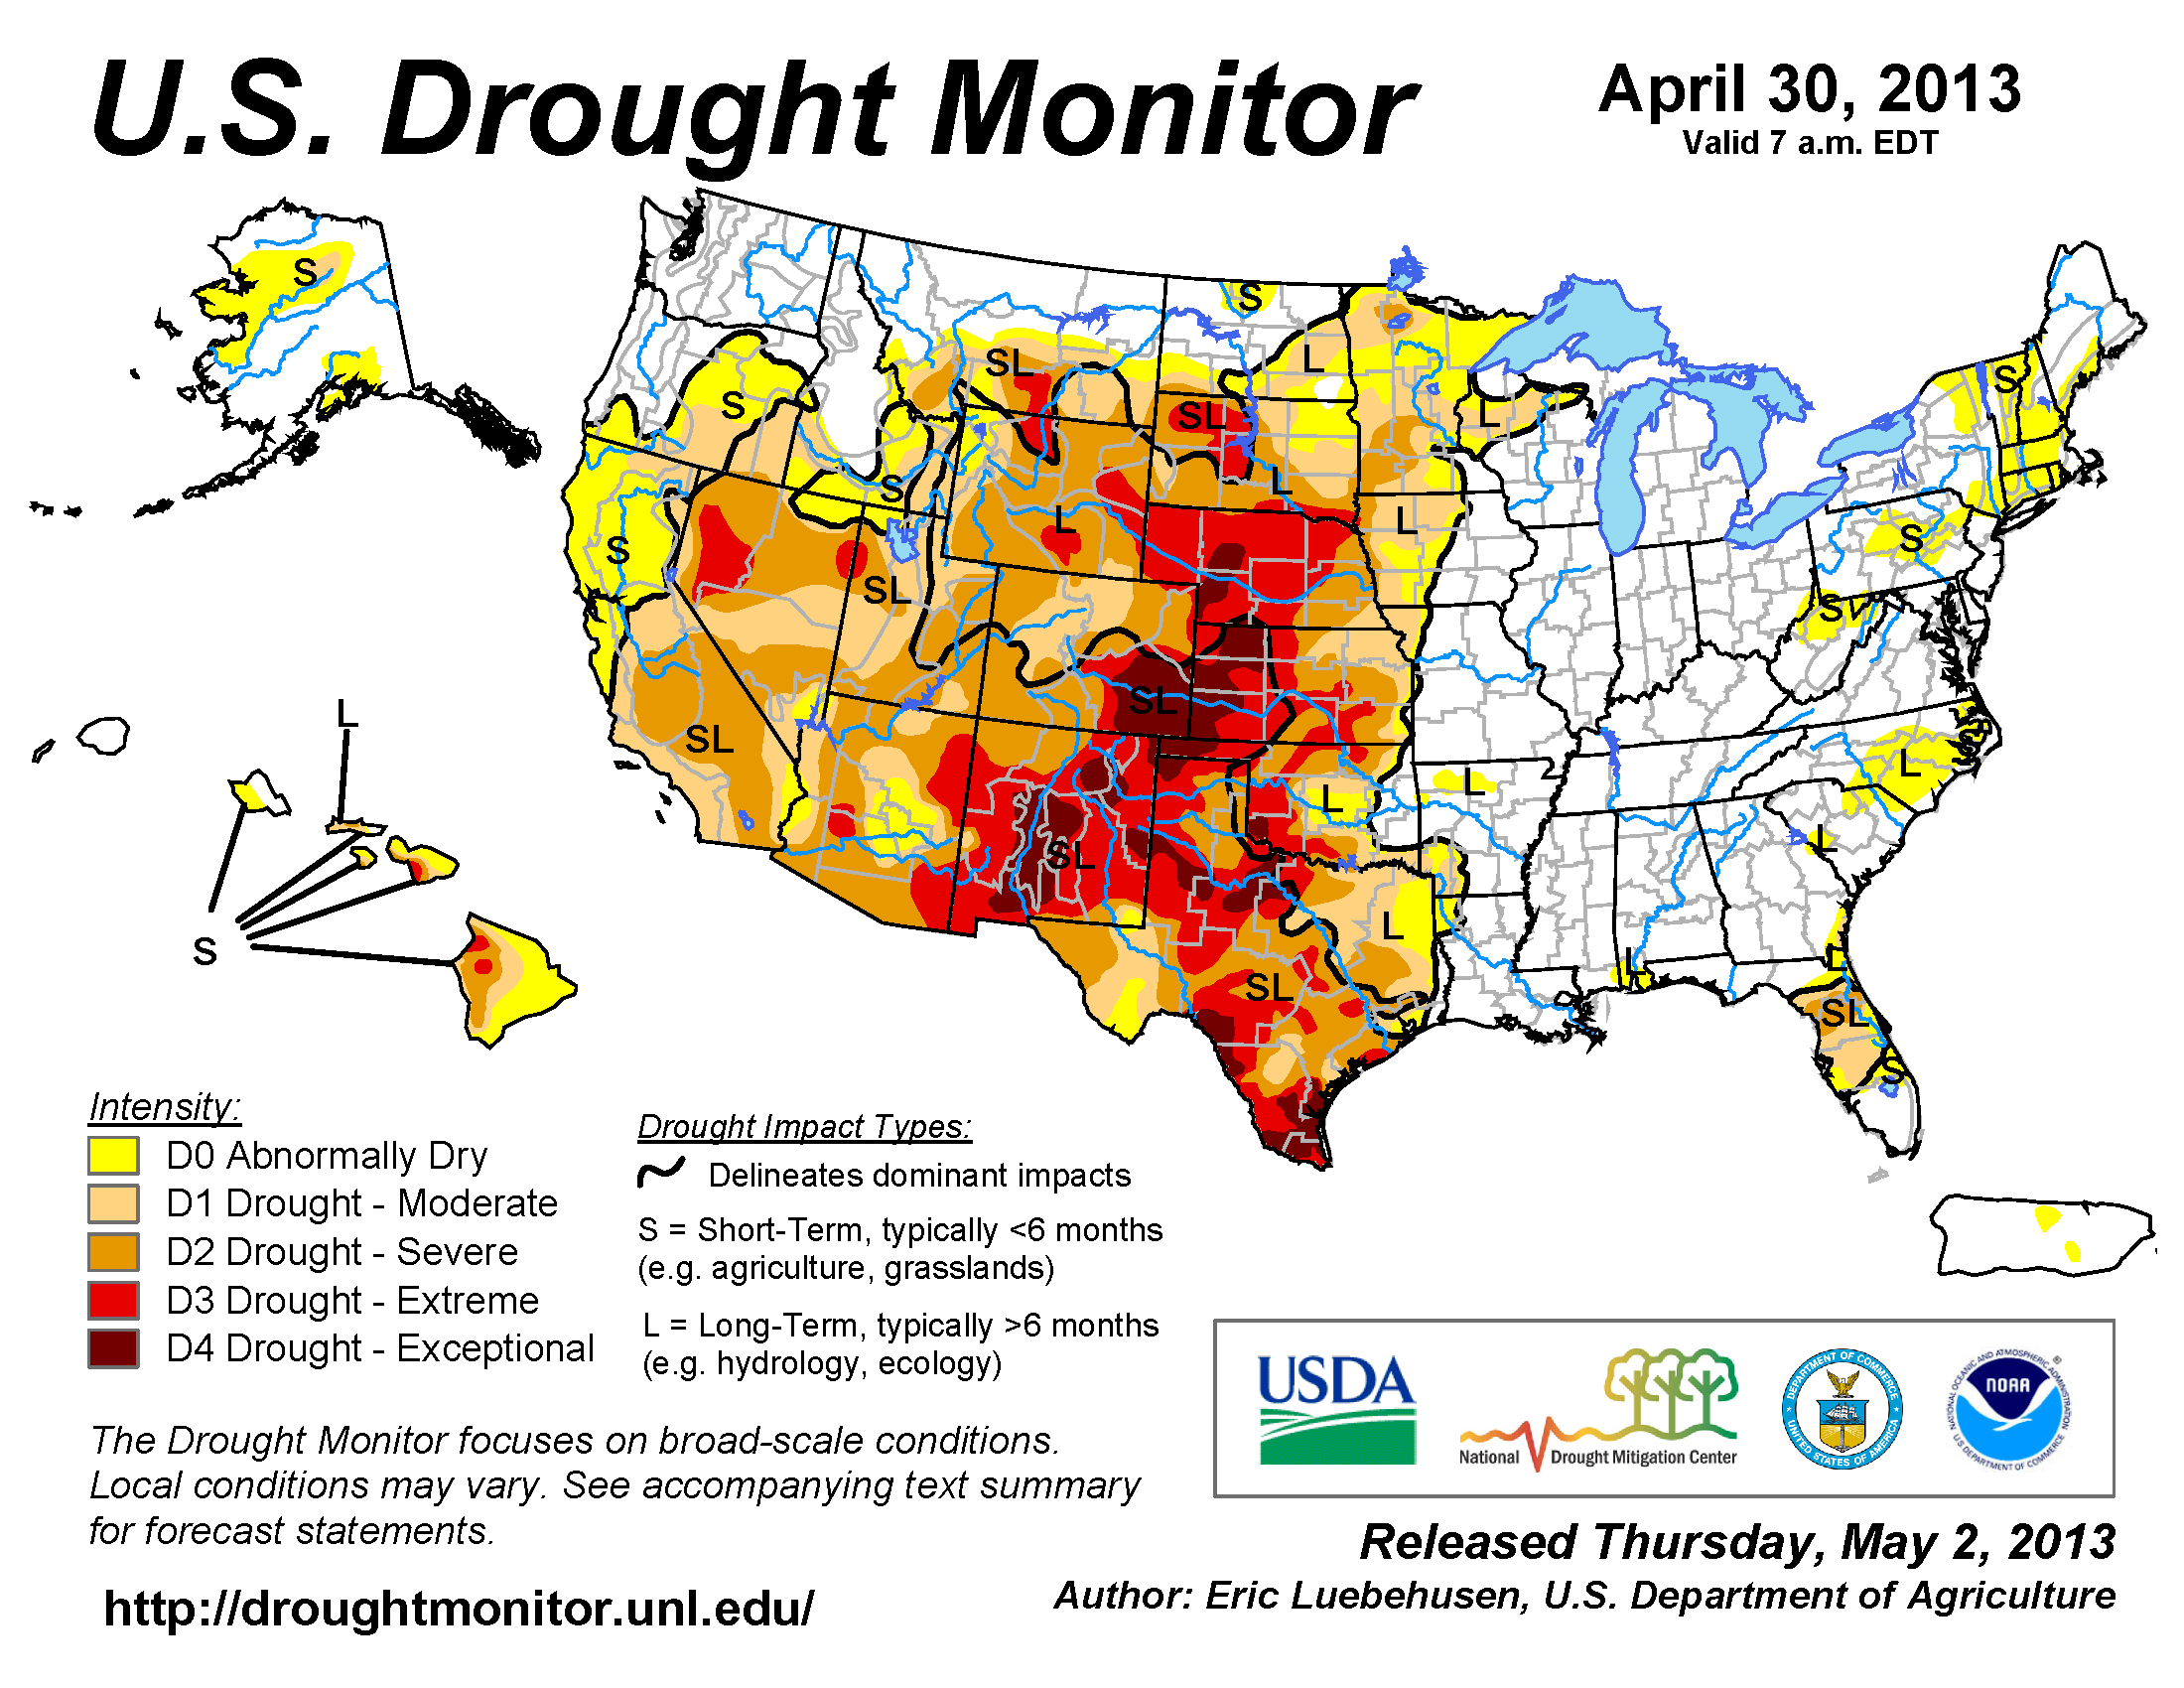 U.S. Drought Monitor map from 2 April 2013